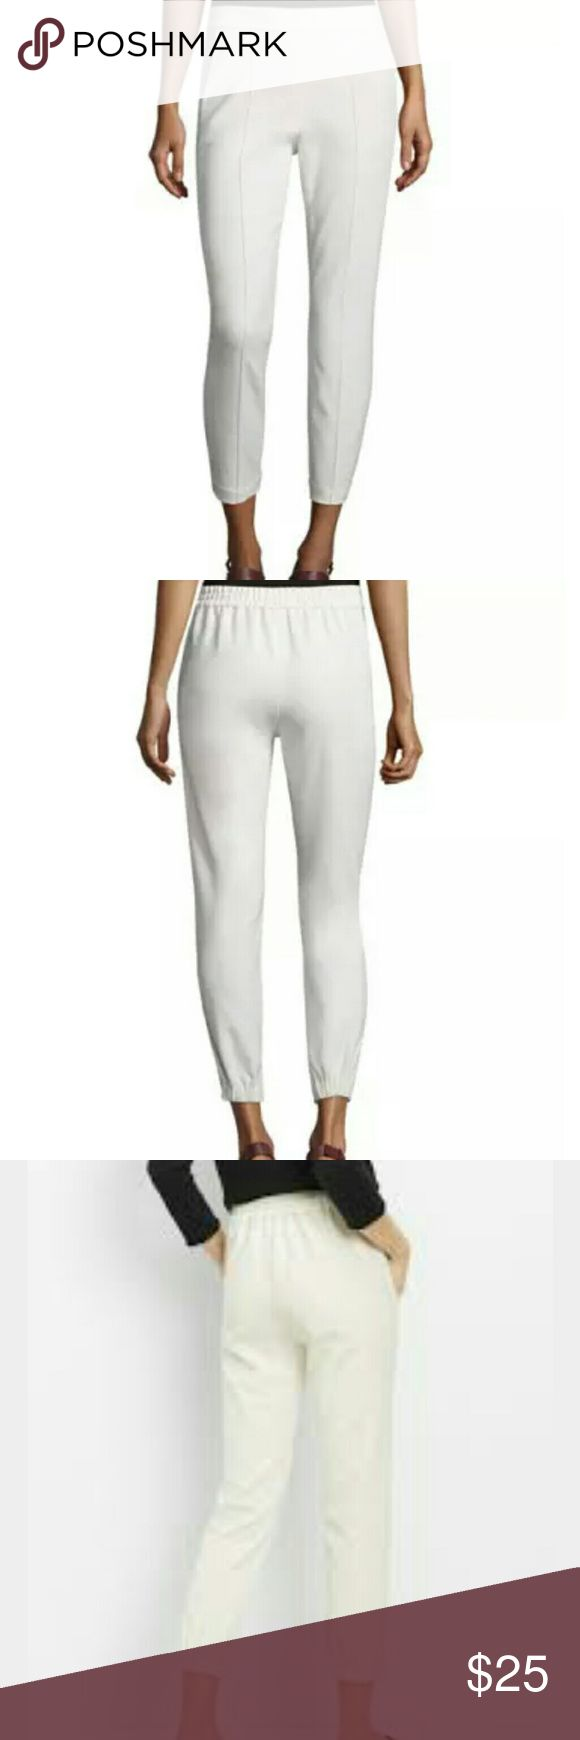 Vince| Easy Pull On Pants Ivory Read! Must have work pants! Exposed seamed detail with tapered legs. Elastic back, chic and comfortable.  Dry clean. Retail for $275. These are Reduced to Clear! They have a slight dark spot from storage. Will come off with dry cleaning! Priced accordingly because they must be dry cleaned when you buy them. Please look at the last two pictures.  48% curpo 36% lyocell 12% cotton 4% elastane Vince Pants Ankle & Cropped